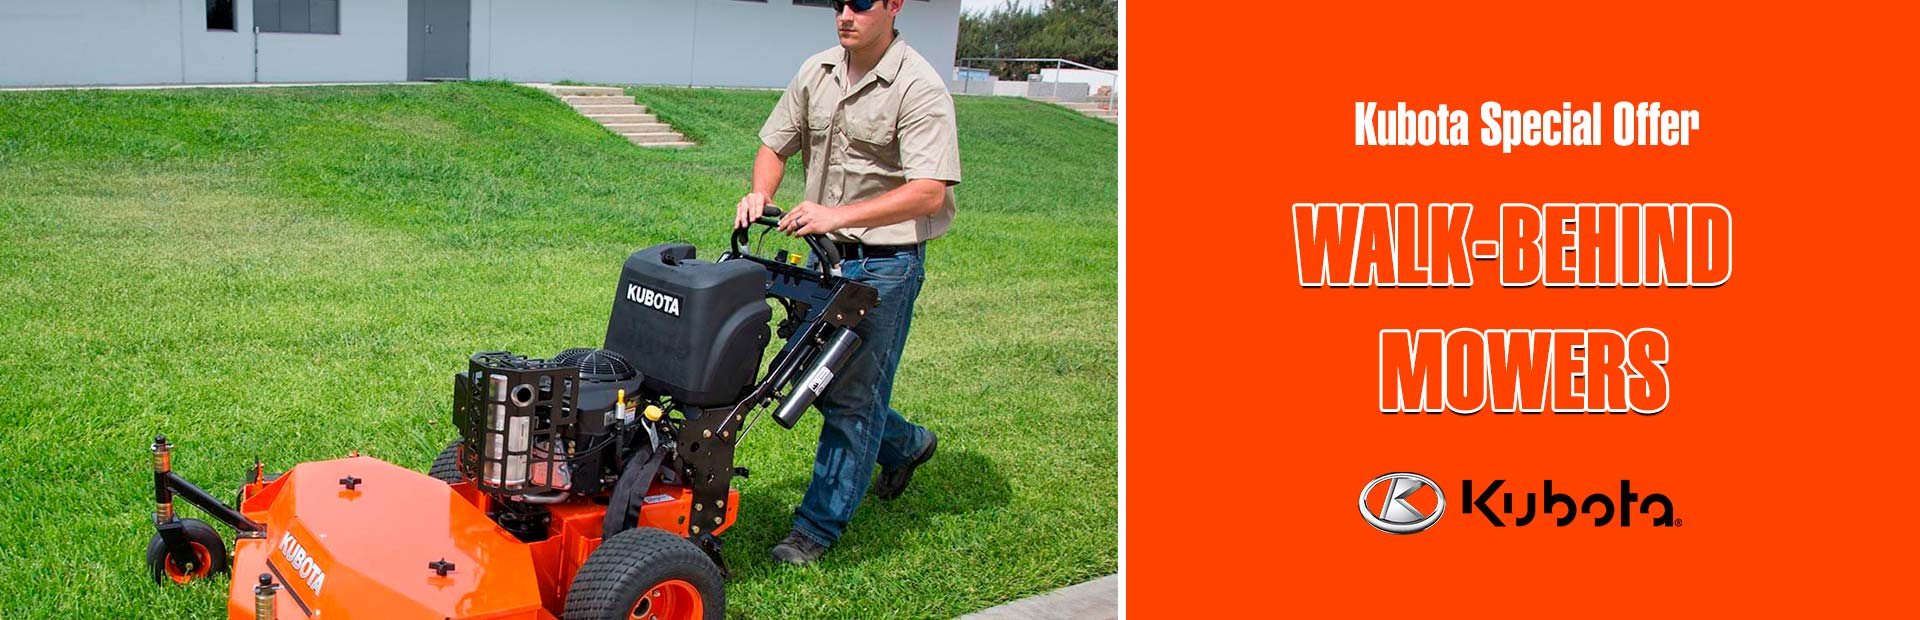 Kubota: Kubota Special Offer - Walk-Behind Mowers